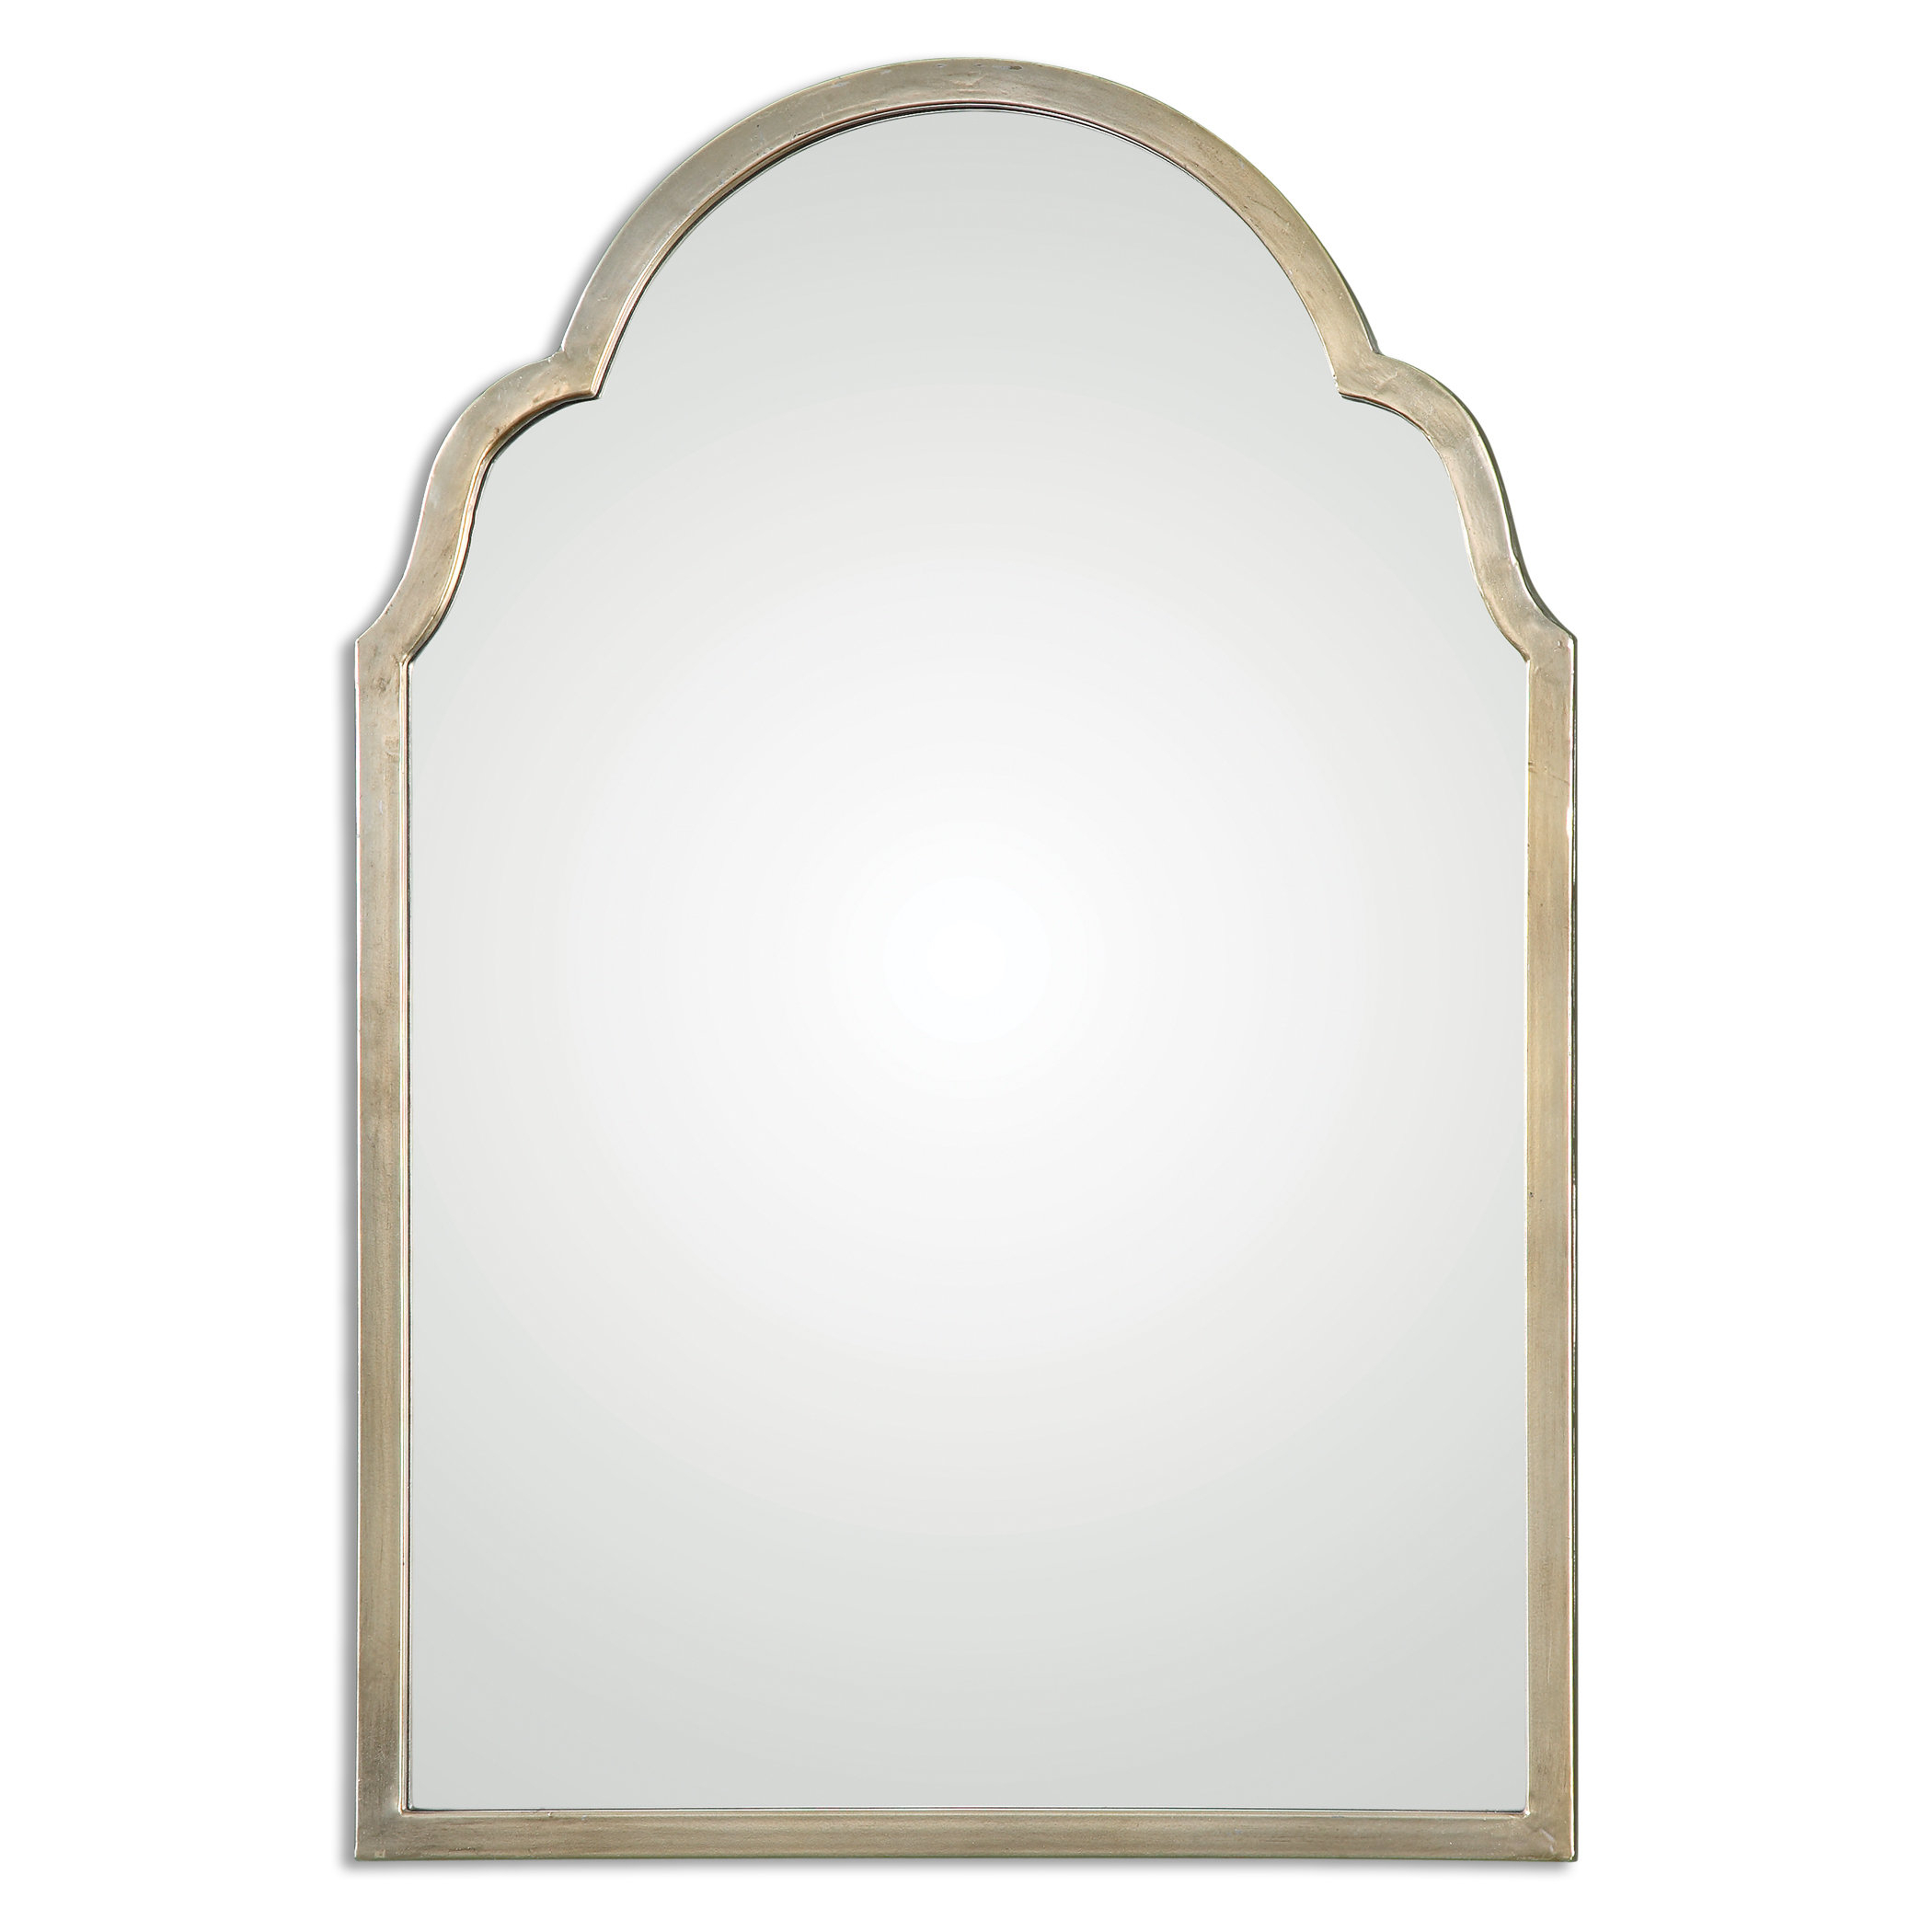 Three Posts Moseley Accent Mirror Regarding Morlan Accent Mirrors (View 13 of 20)